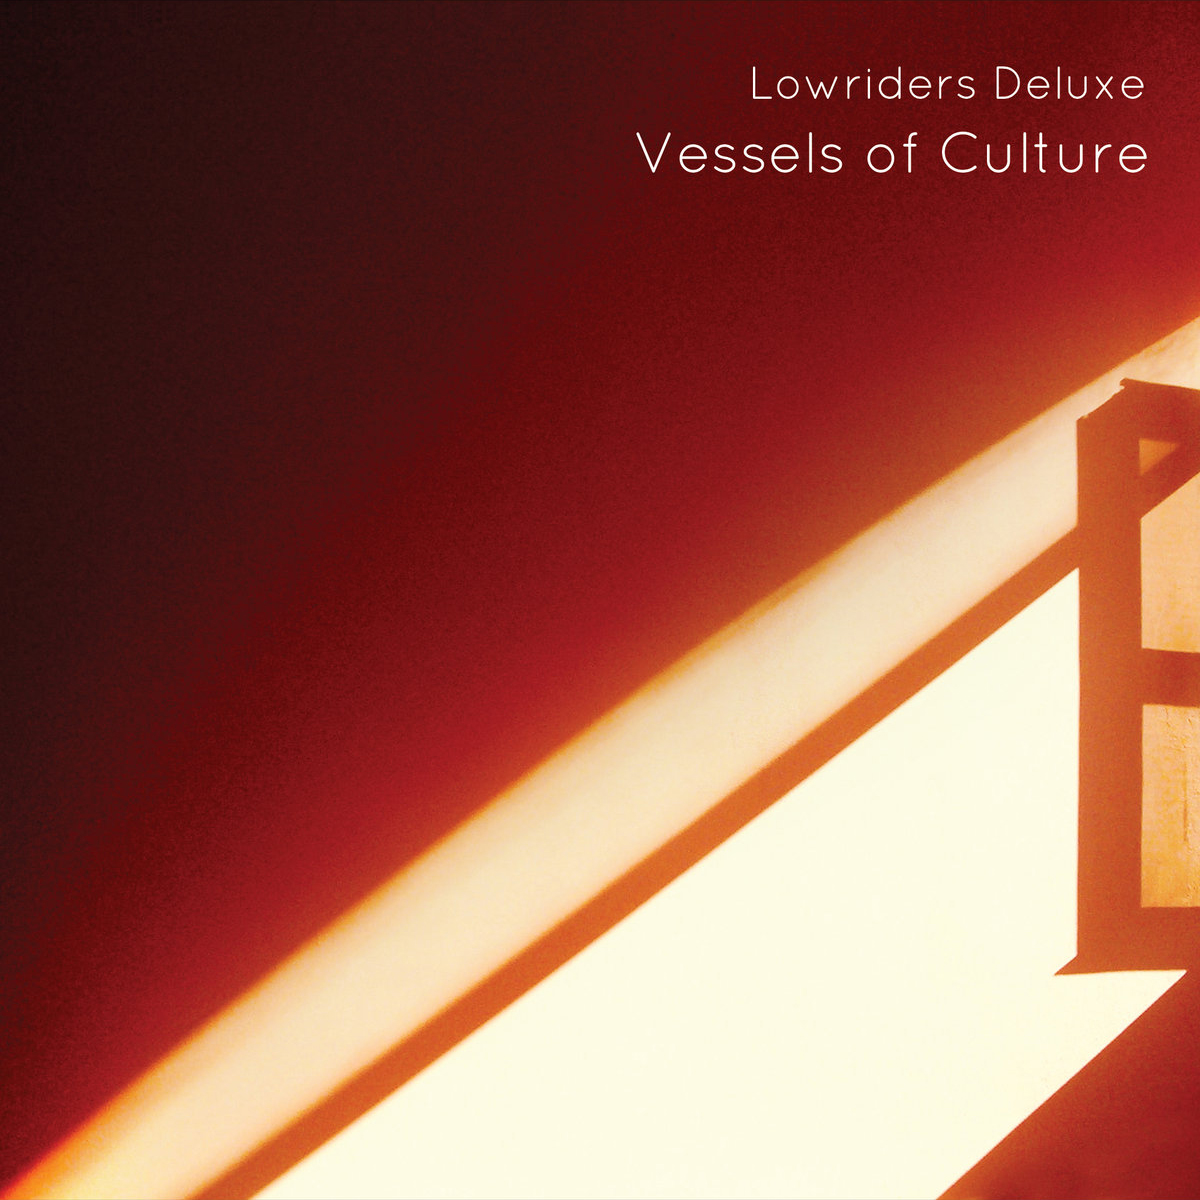 Vessels of Culture - Lowriders Deluxe